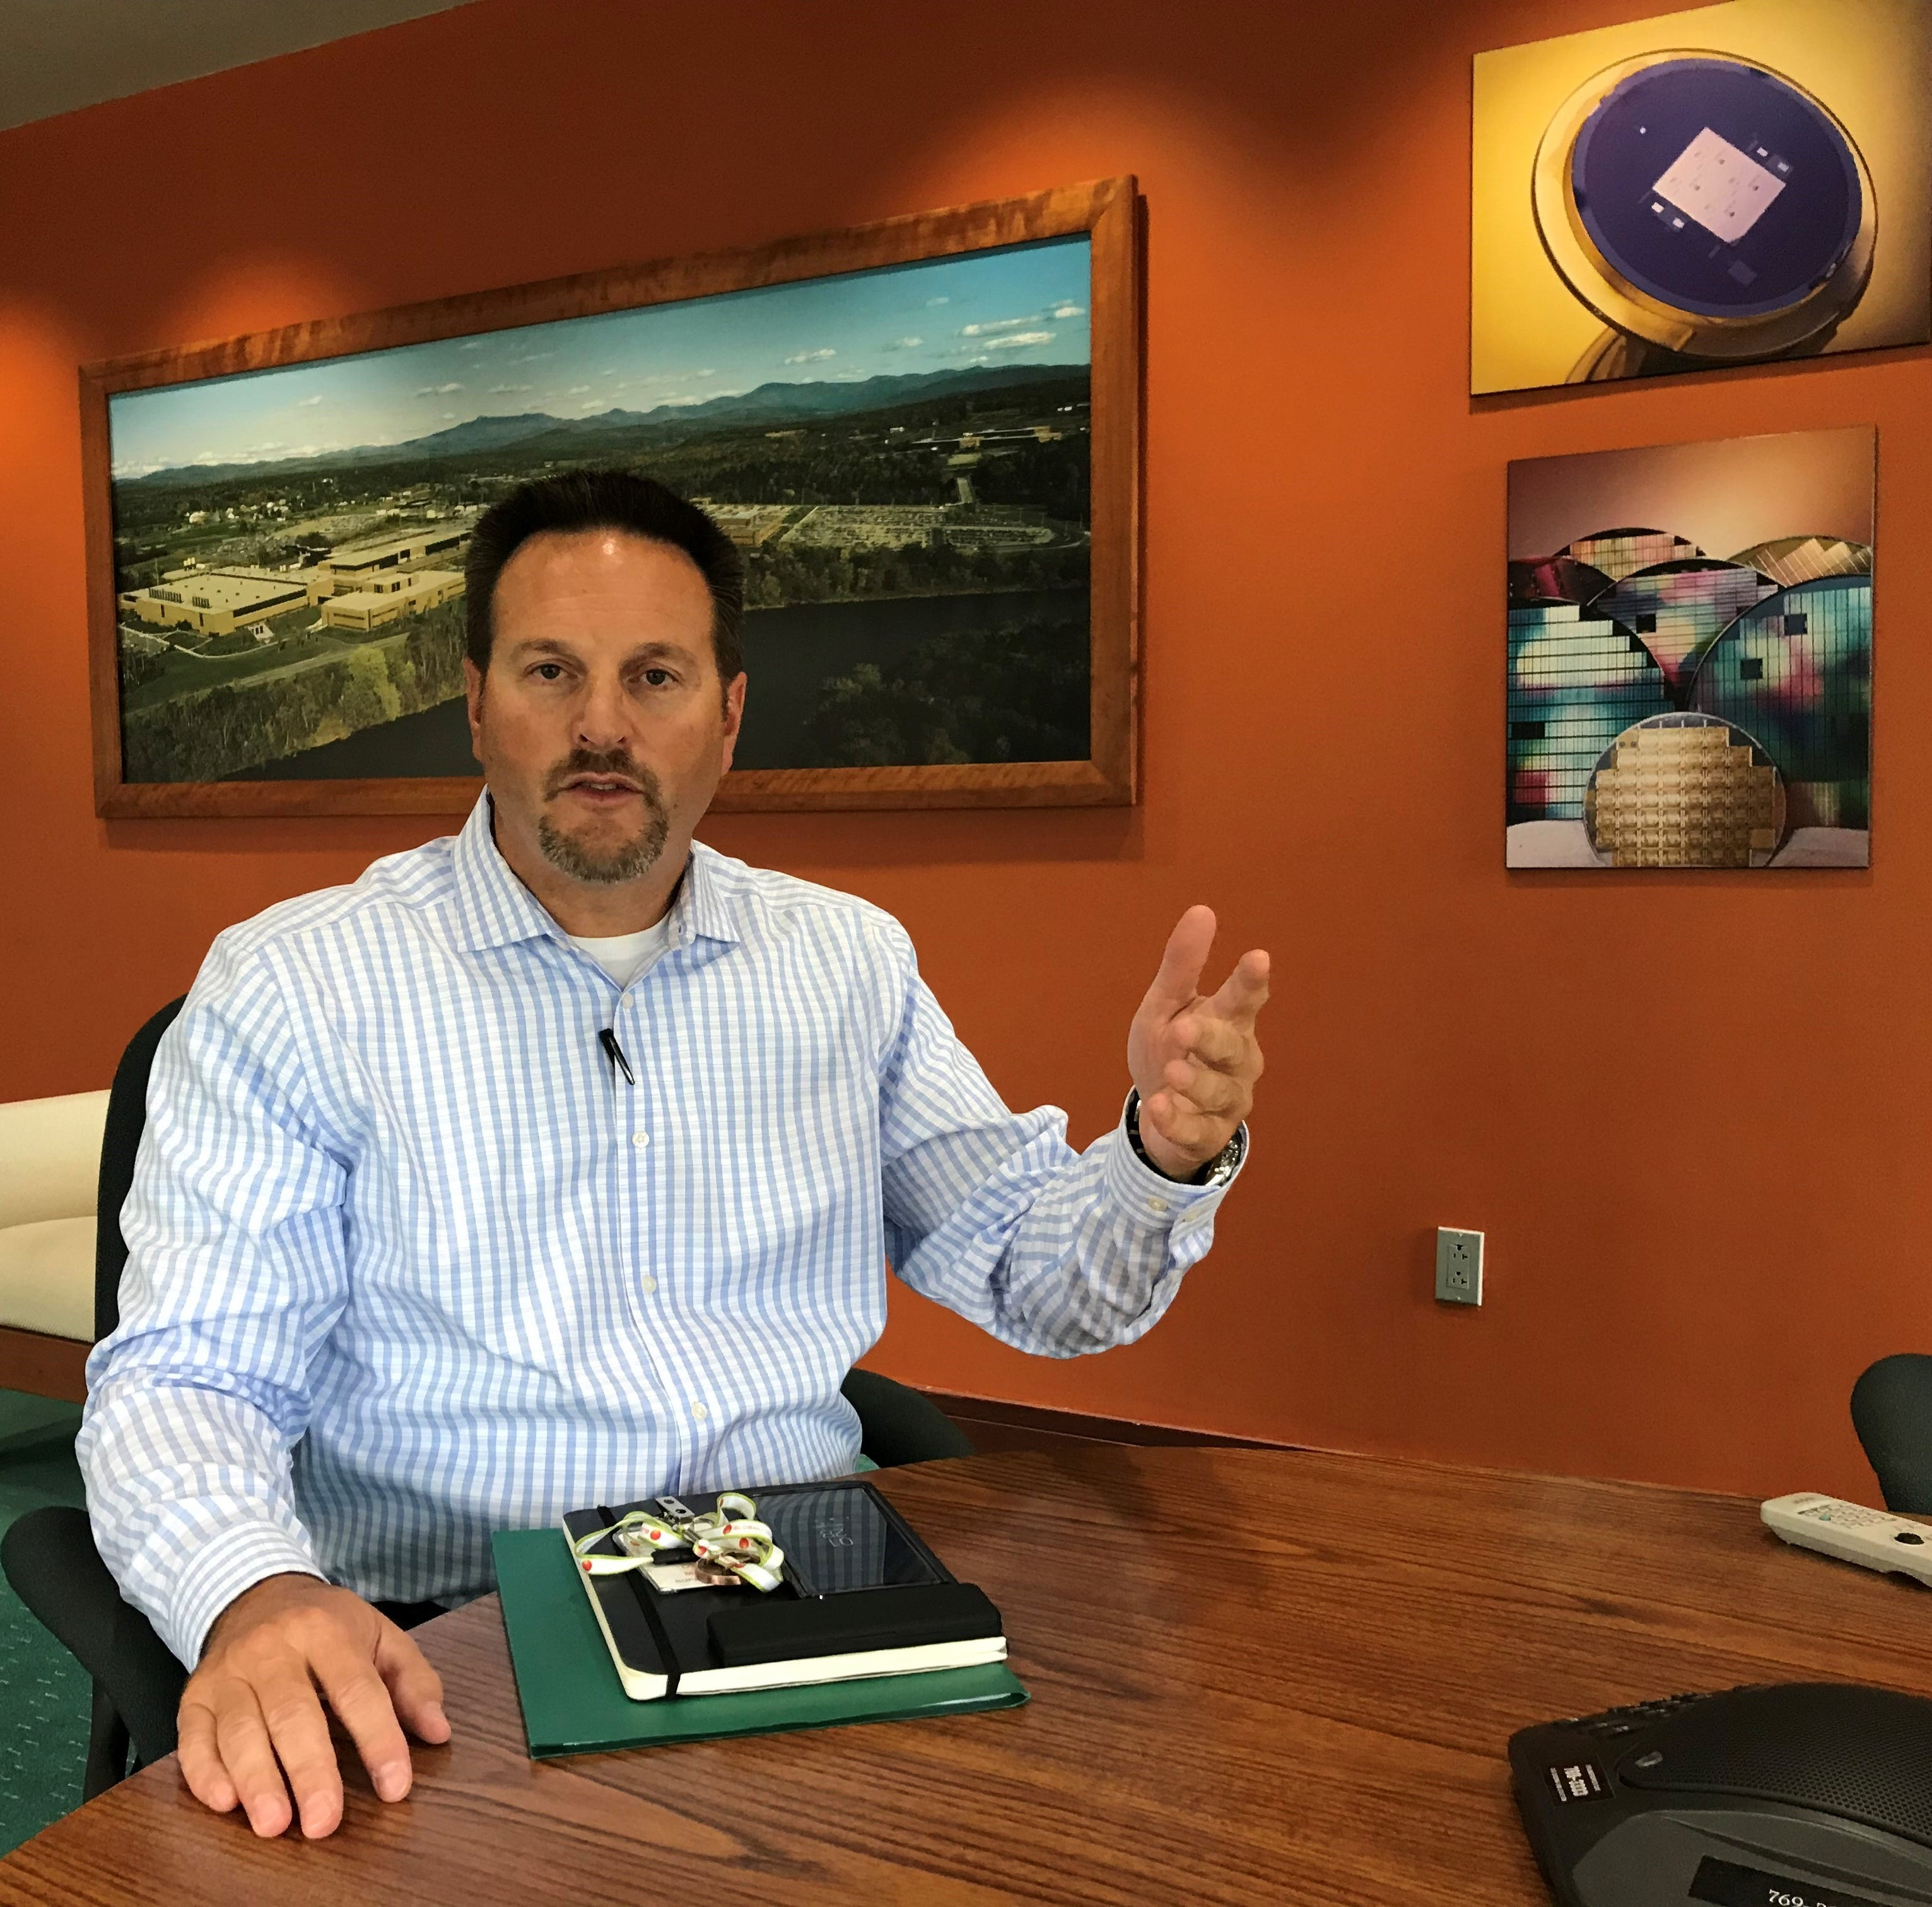 GlobalFoundries executive: Cheaper power a must for Essex Junction fab